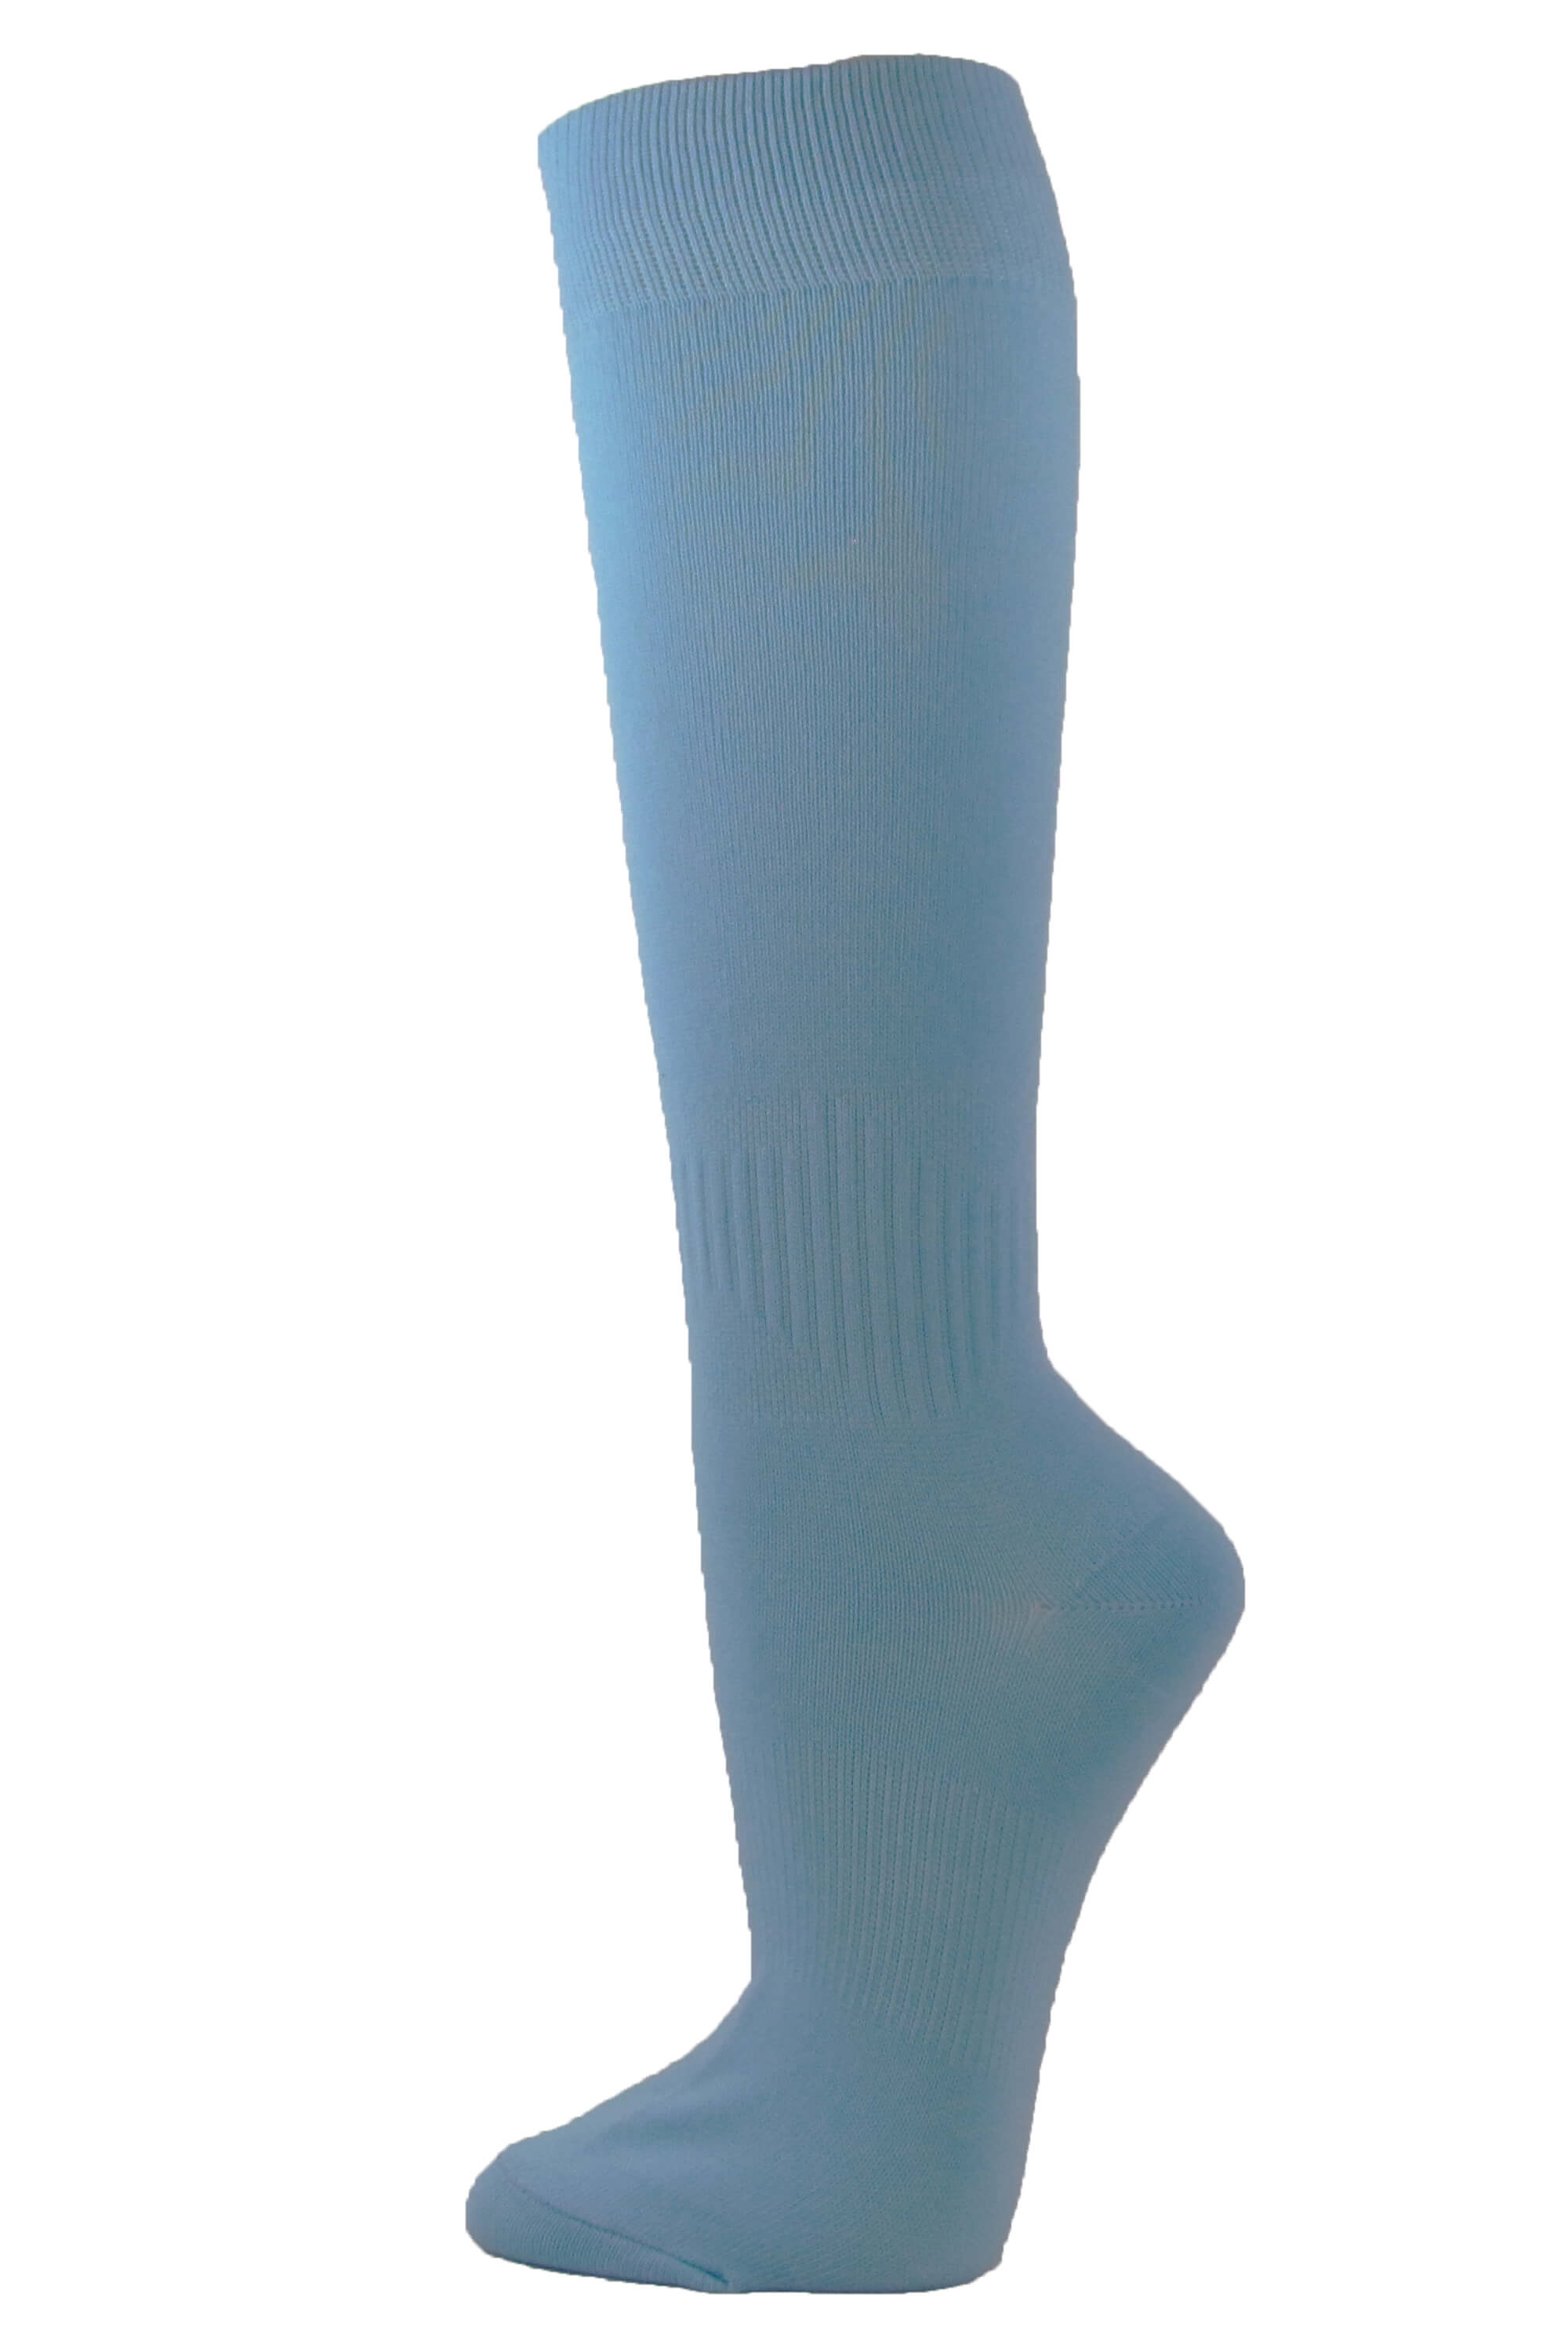 Couver Unisex Polyester Soccer Knee High Sports Athletic Socks, Cerulean Blue Large